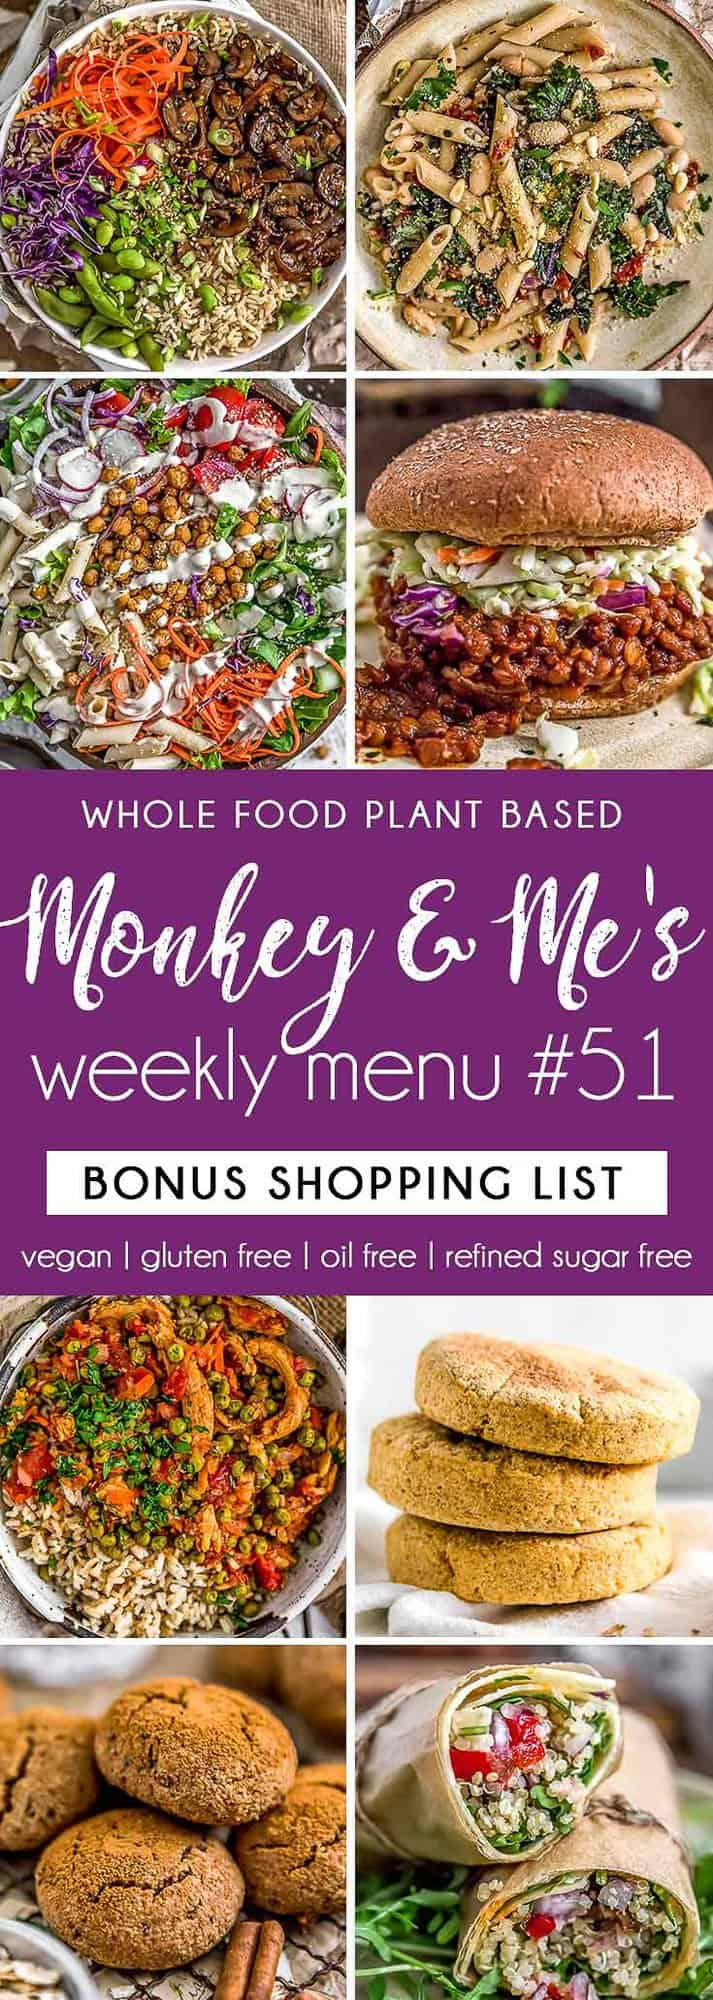 Monkey and Me's Menu 51 featuring 8 recipes